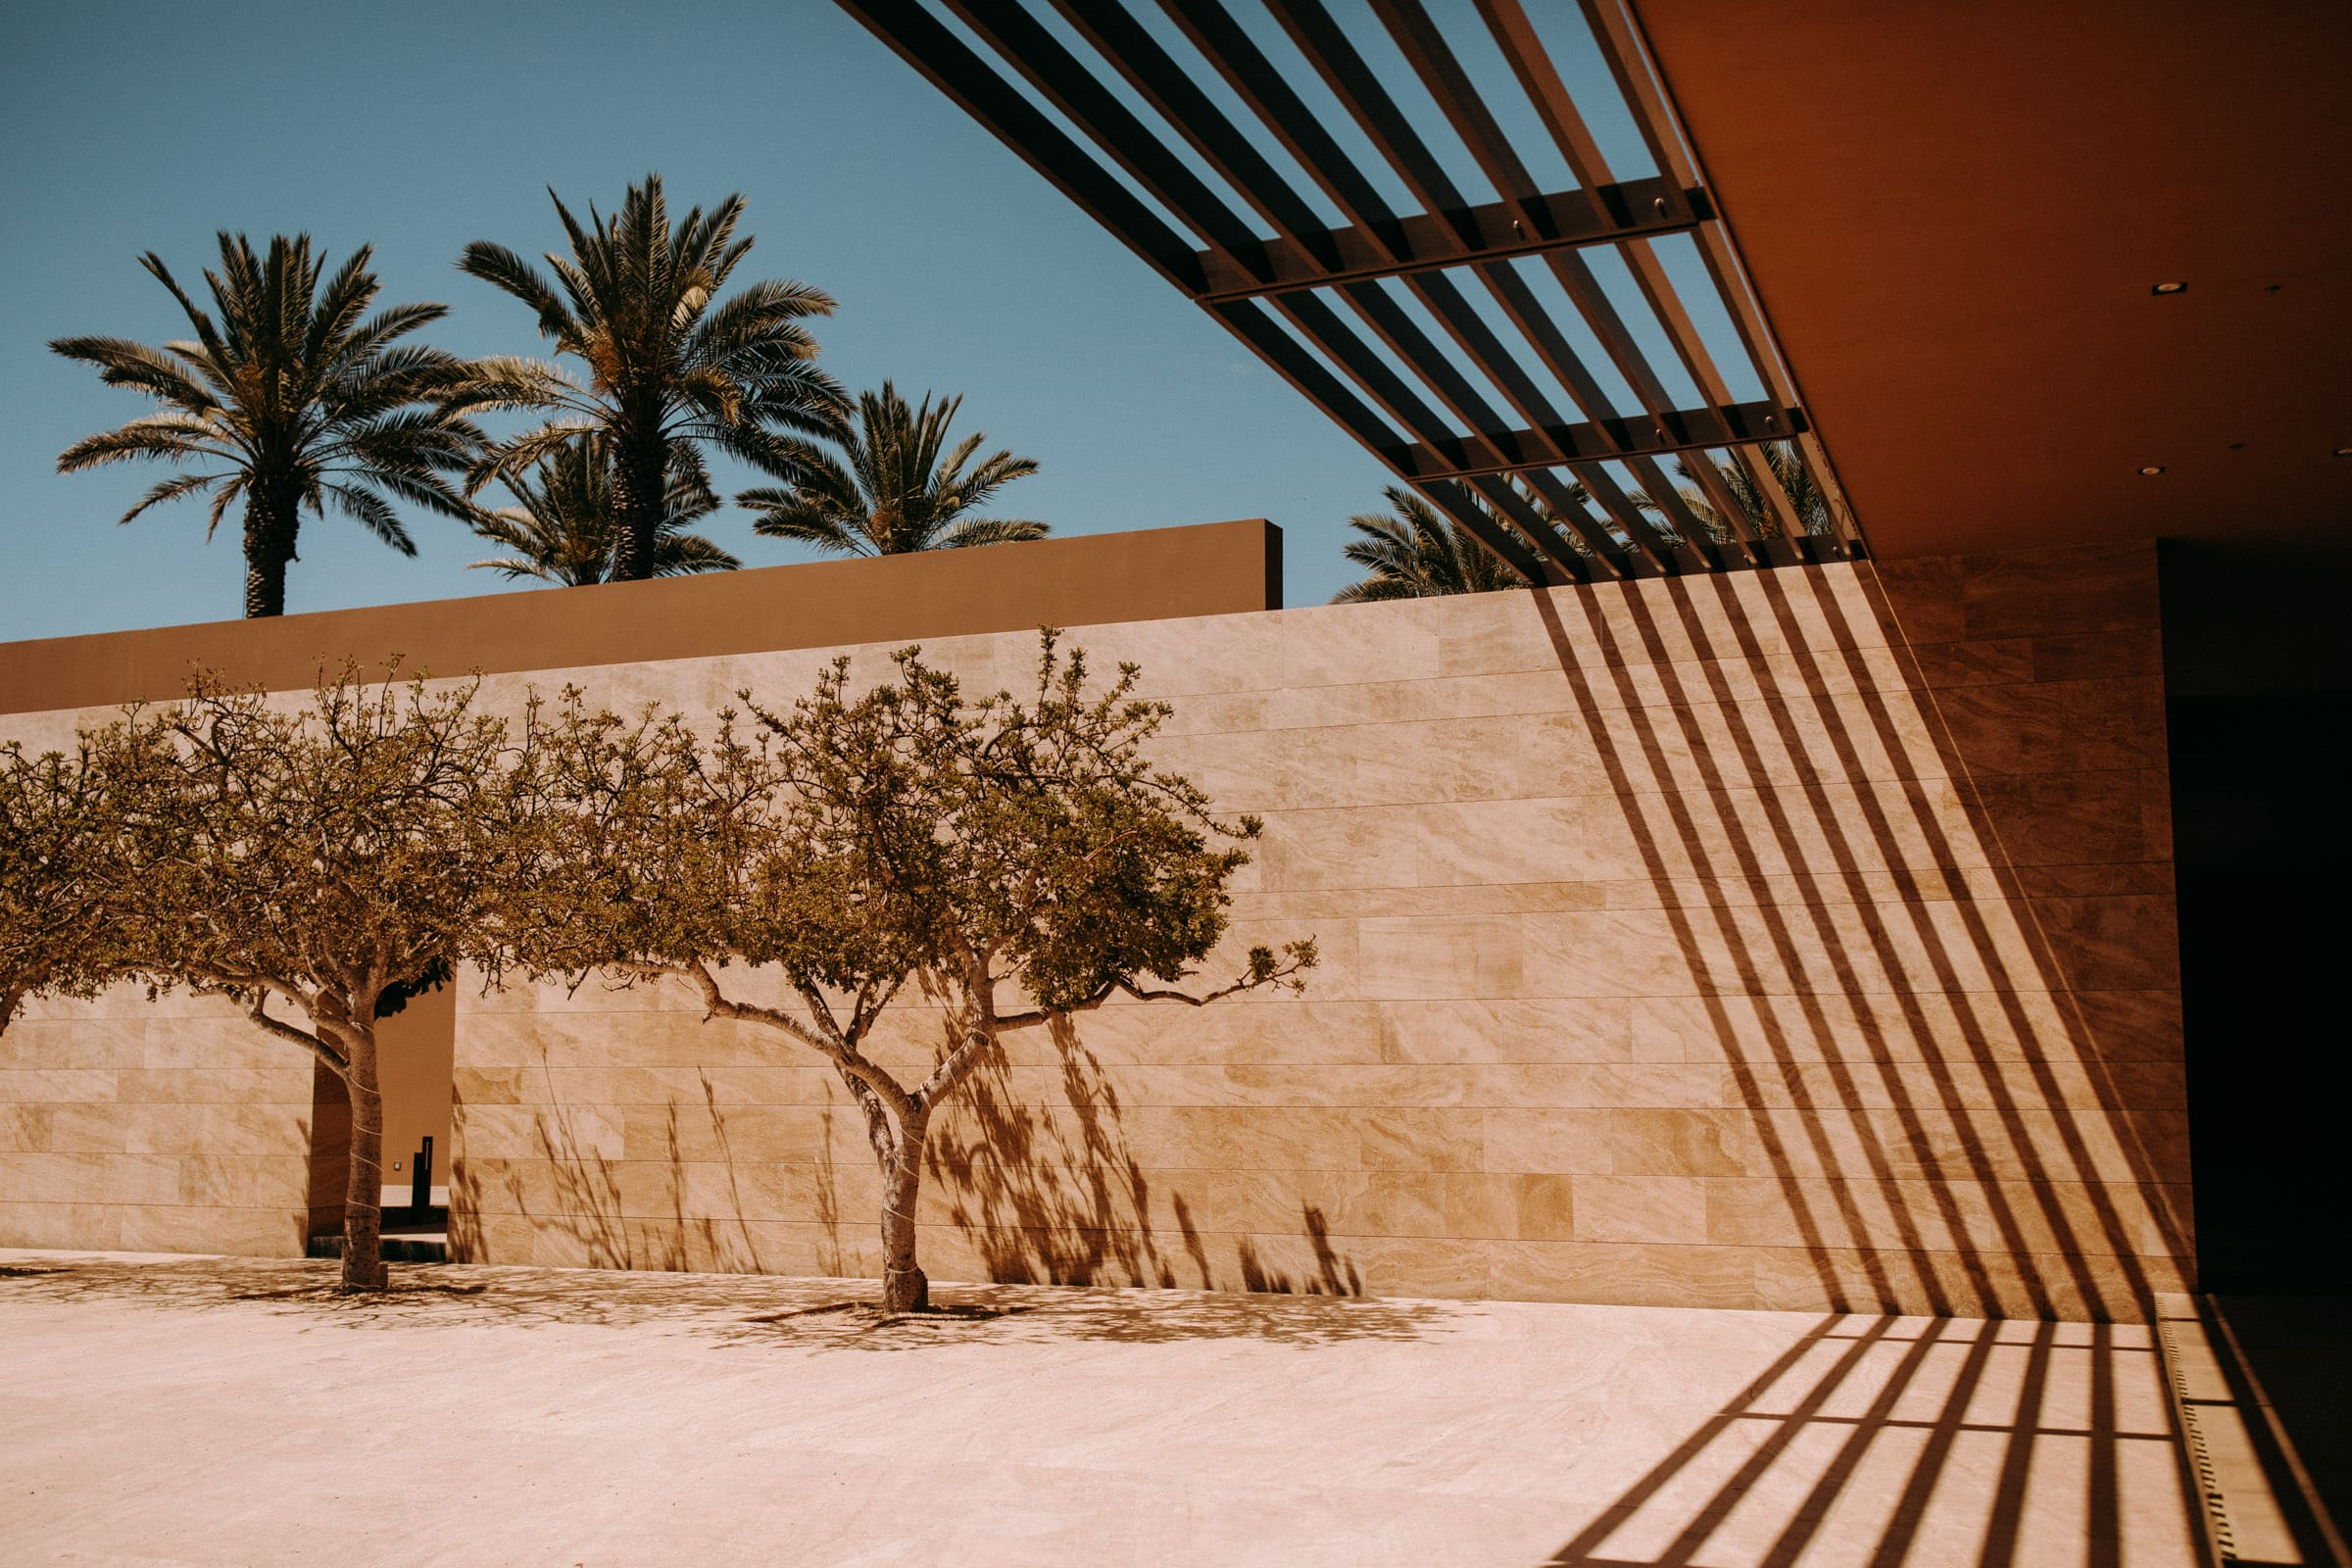 The location featrues shadow play at the JW Marriott, with trees and palm trees.